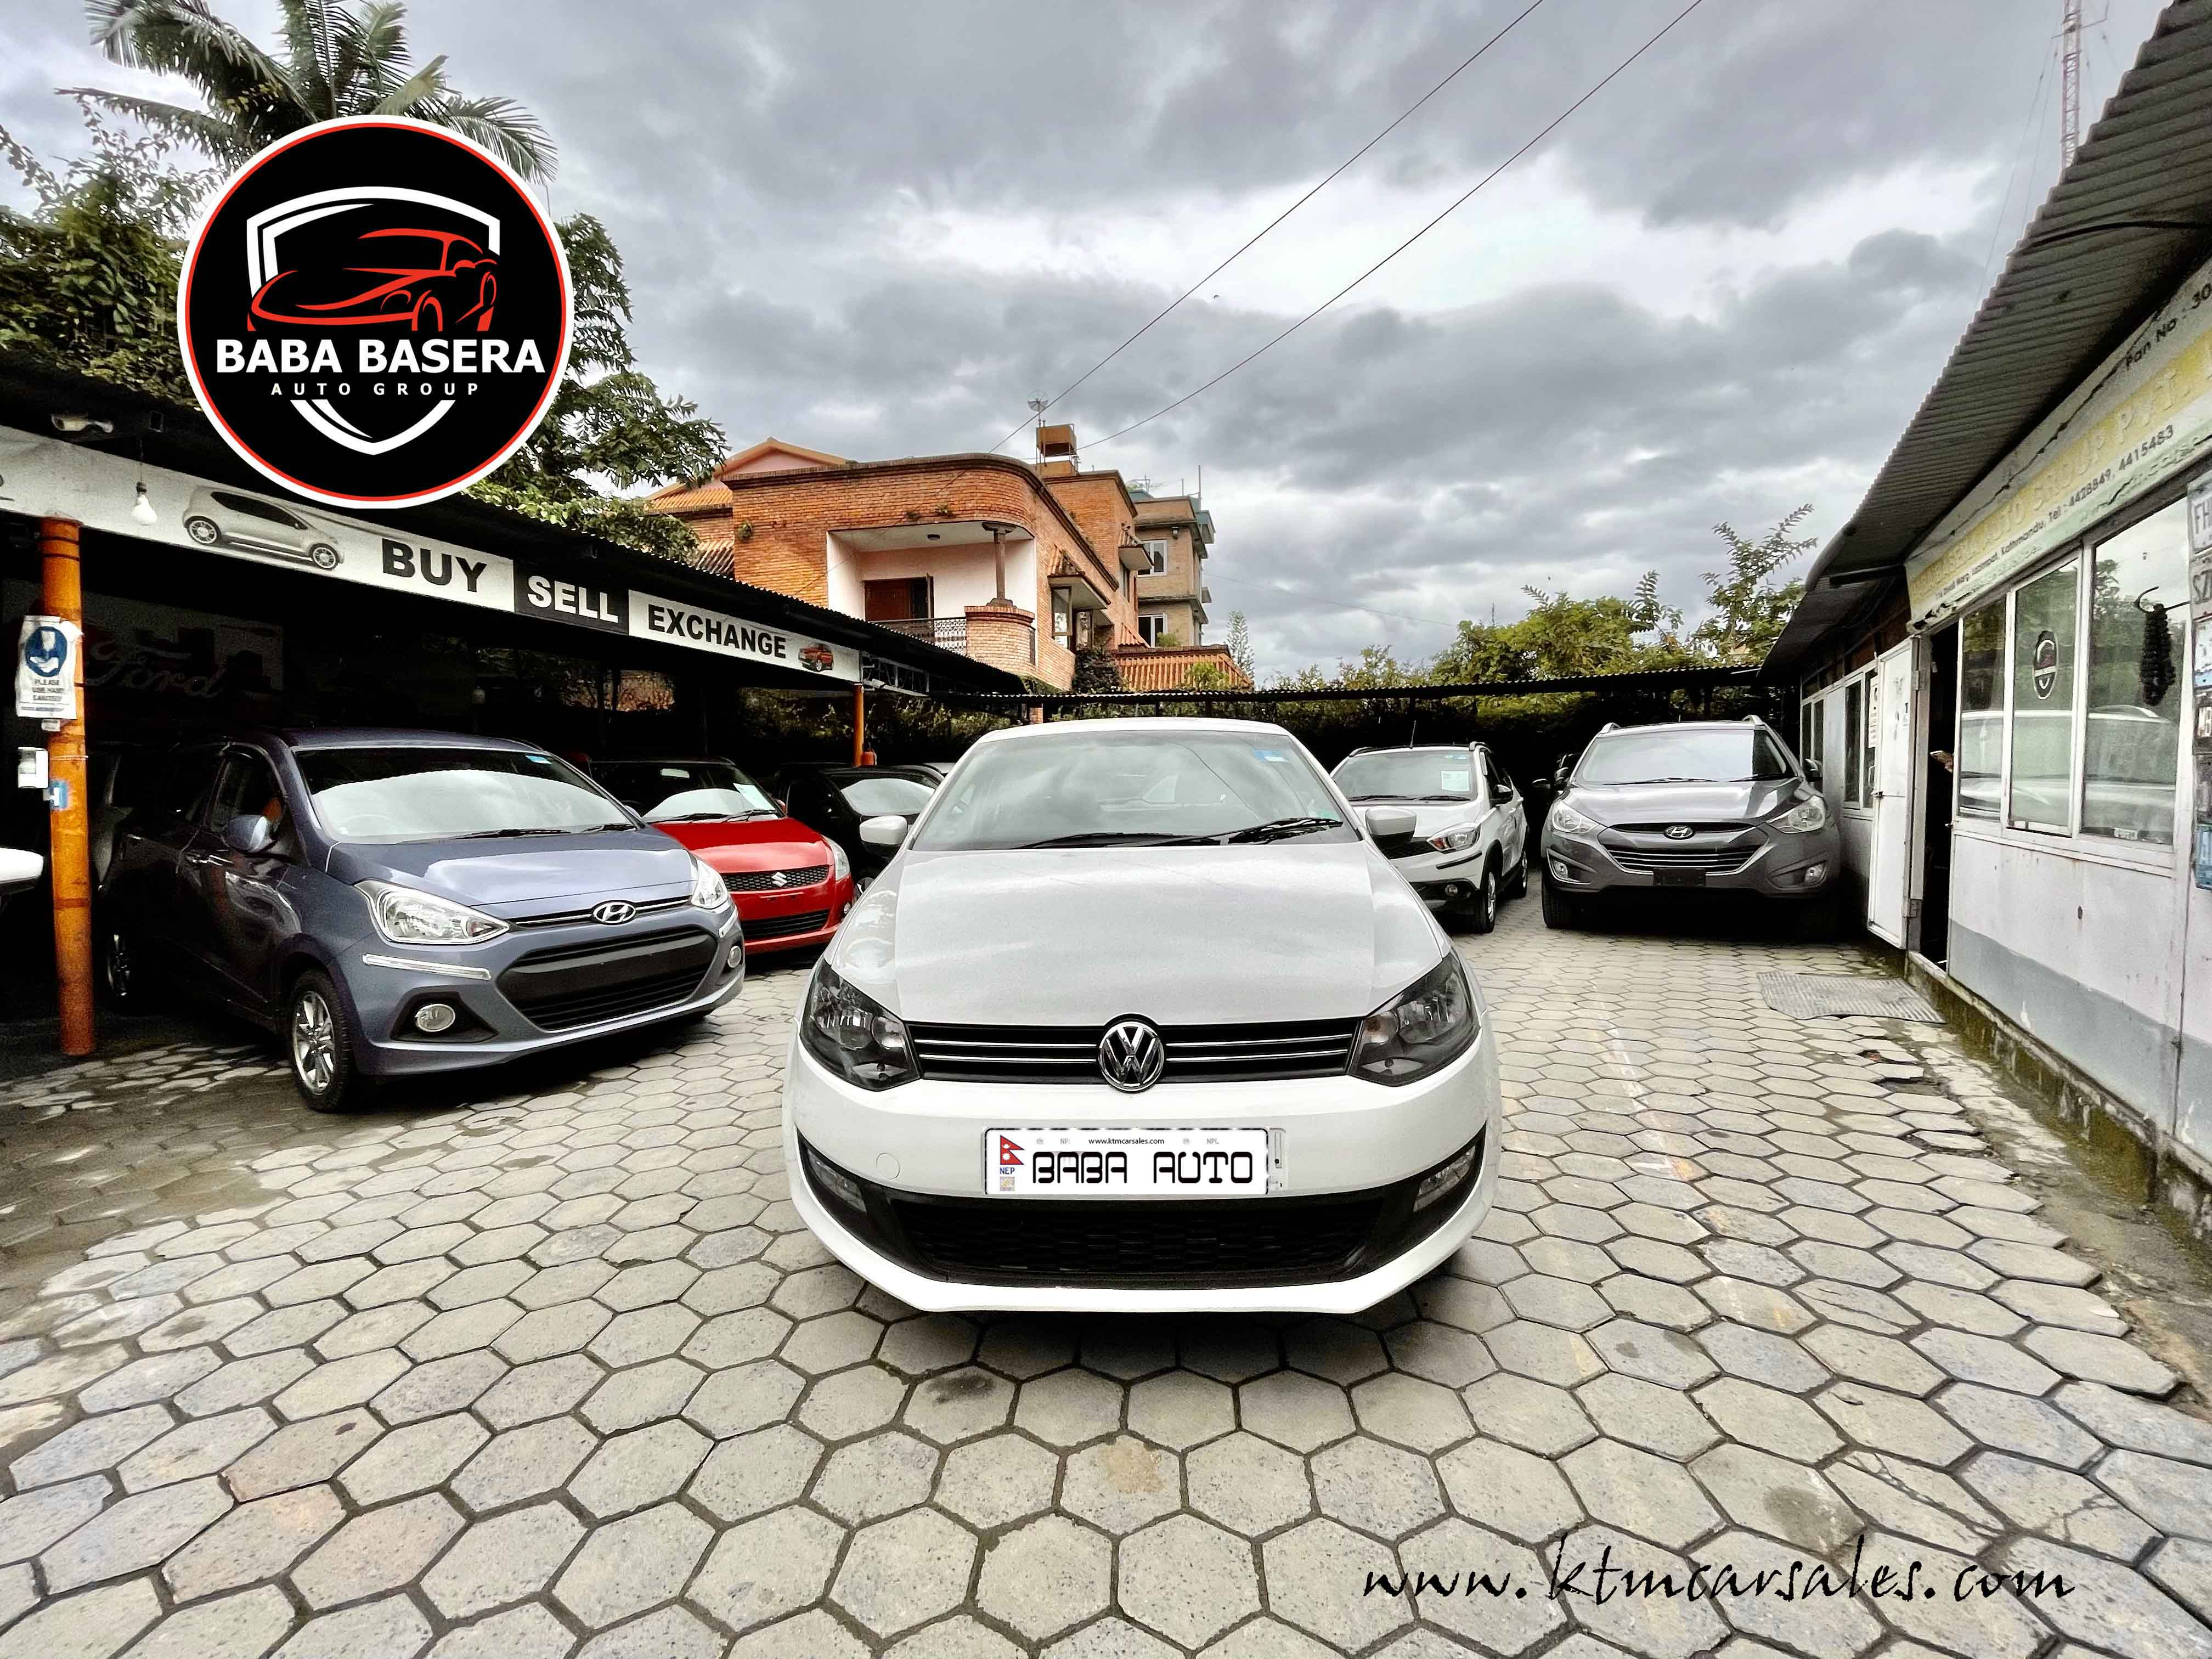 Single Owner Volkswagen POLO HighLine immaculate condition - Image 12